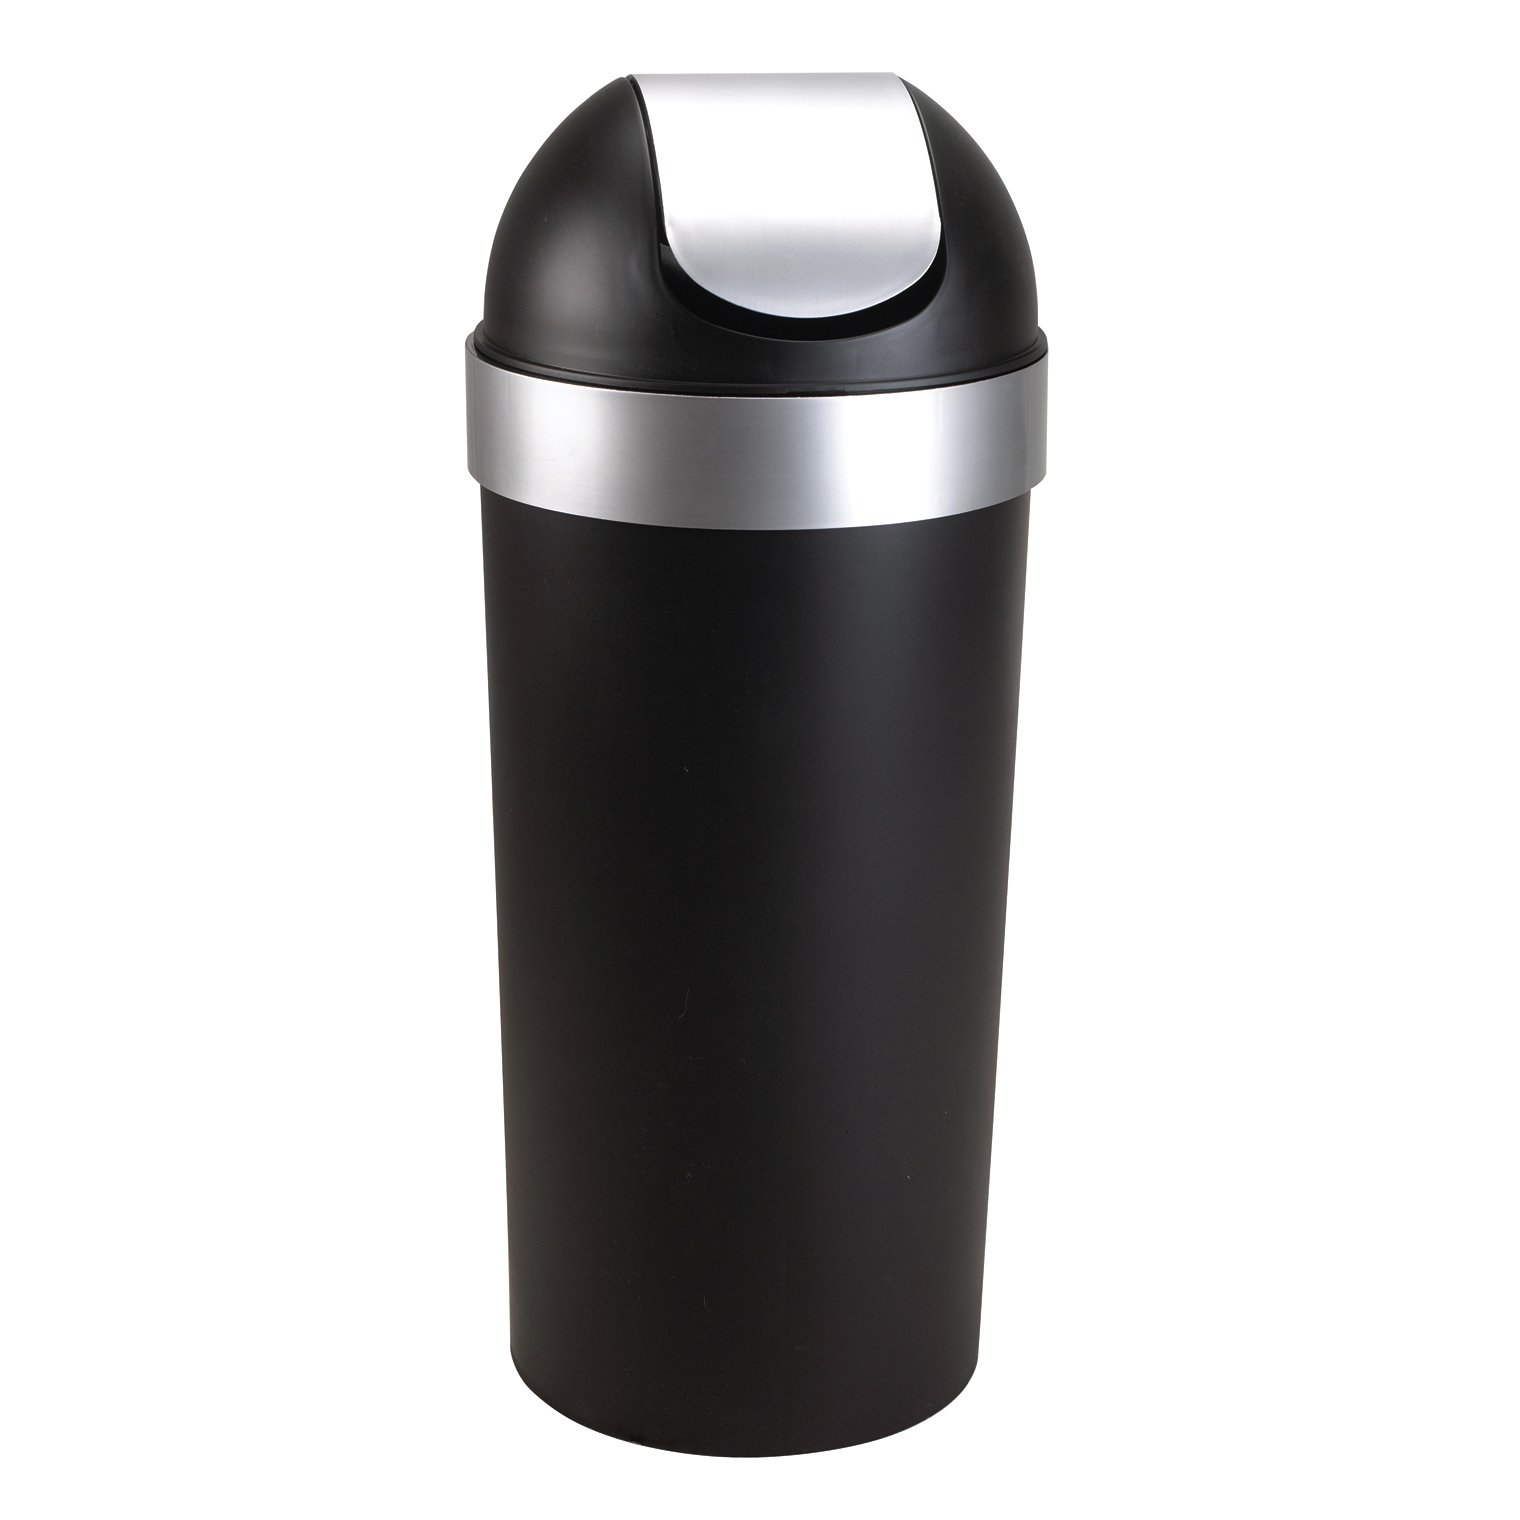 Umbra Venti 16-Gallon Swing Top Kitchen Trash Can - Large, 35-inch Tall Garbage Can for Indoor, Outdoor or Commercial Use, Black/Nickel by Umbra